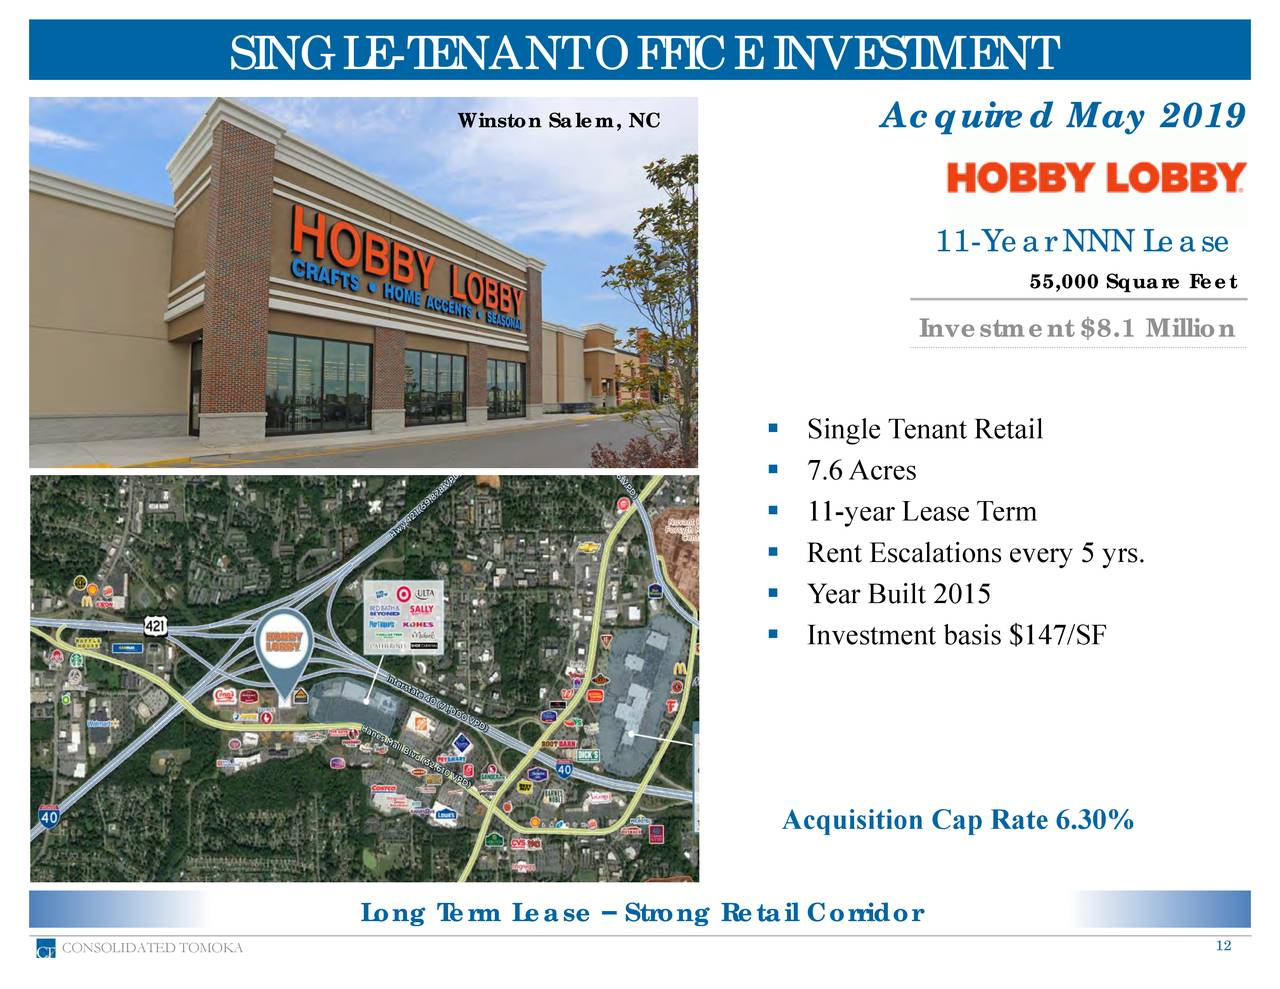 Winston Salem, NC Acquired May 2019 11-Year NNN Lease 55,000 Square Feet Investment $8.1 Million ▪ Single Tenant Retail ▪ 7.6Acres ▪ 11-year Lease Term ▪ Rent Escalations every 5 yrs. ▪ Year Built 2015 ▪ Investment basis $147/SF Acquisition Cap Rate 6.30% Long Term Lease – Strong Retail Corridor CONSOLIDATED TOMOKA 12